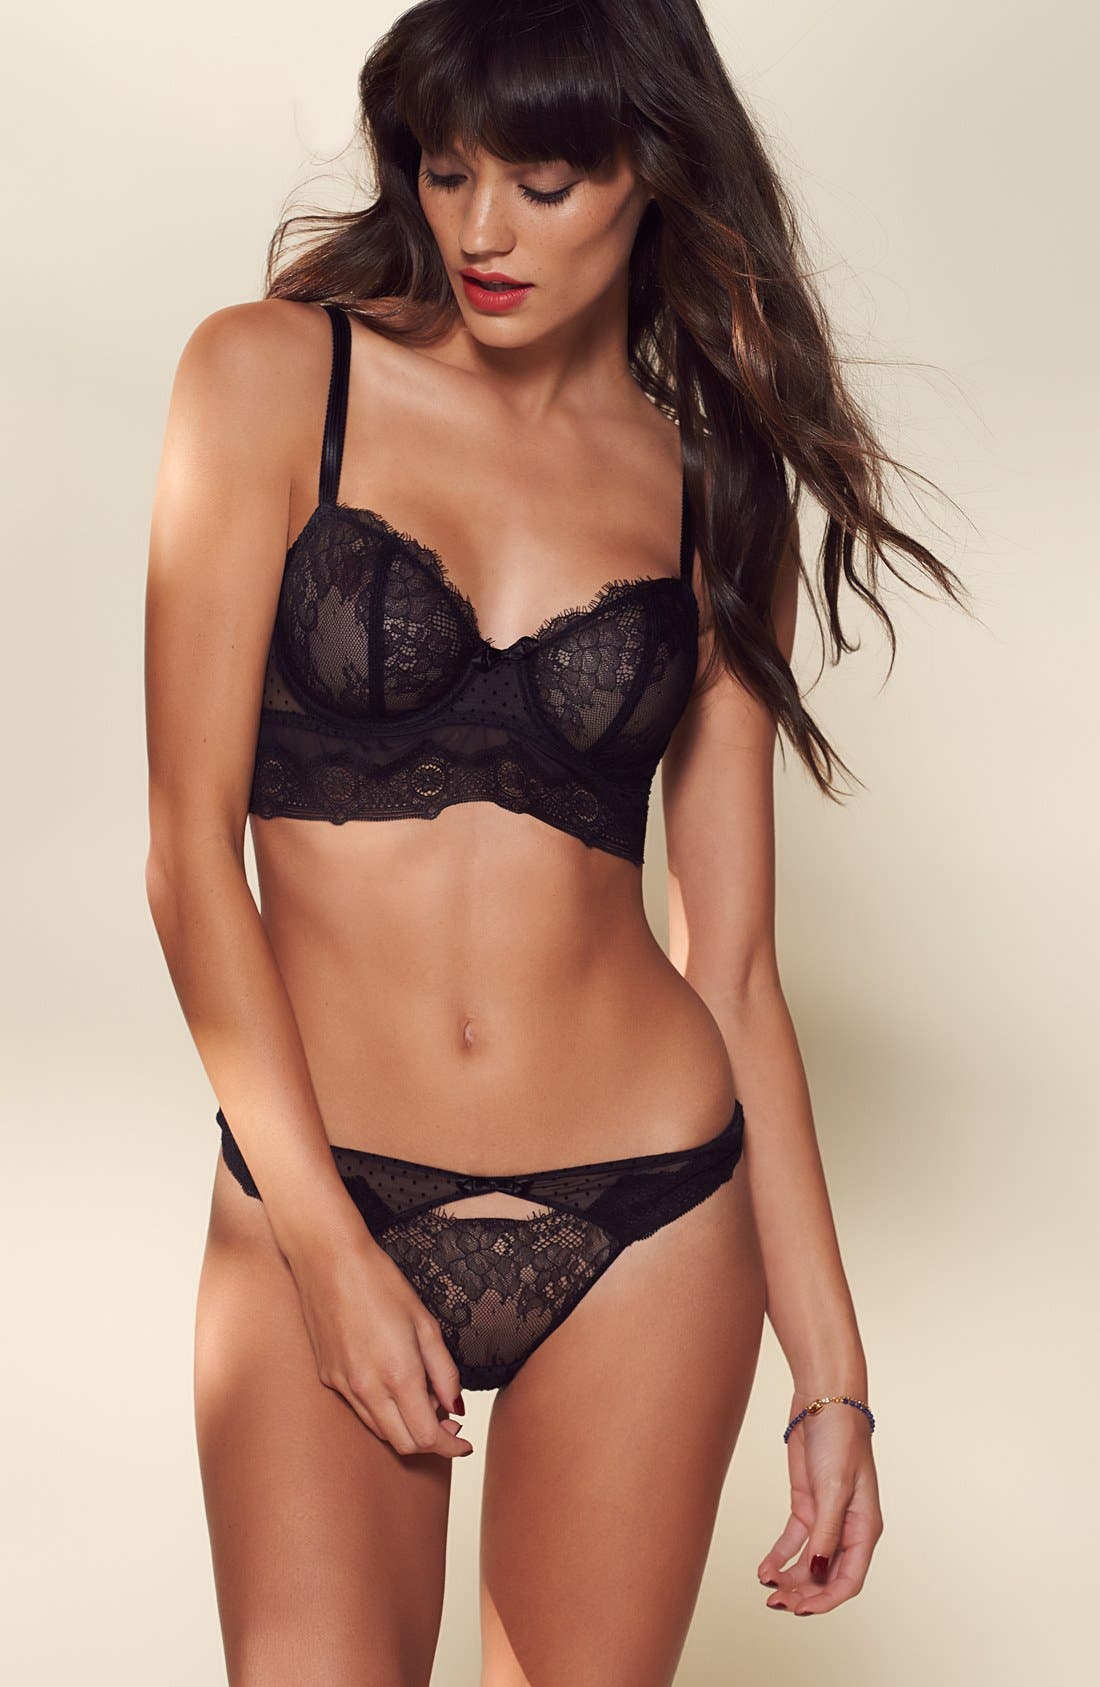 PASSIONATA BY CHANTELLE,                             Blossom Lace Keyhole Thong,                             Alternate thumbnail 6, color,                             001